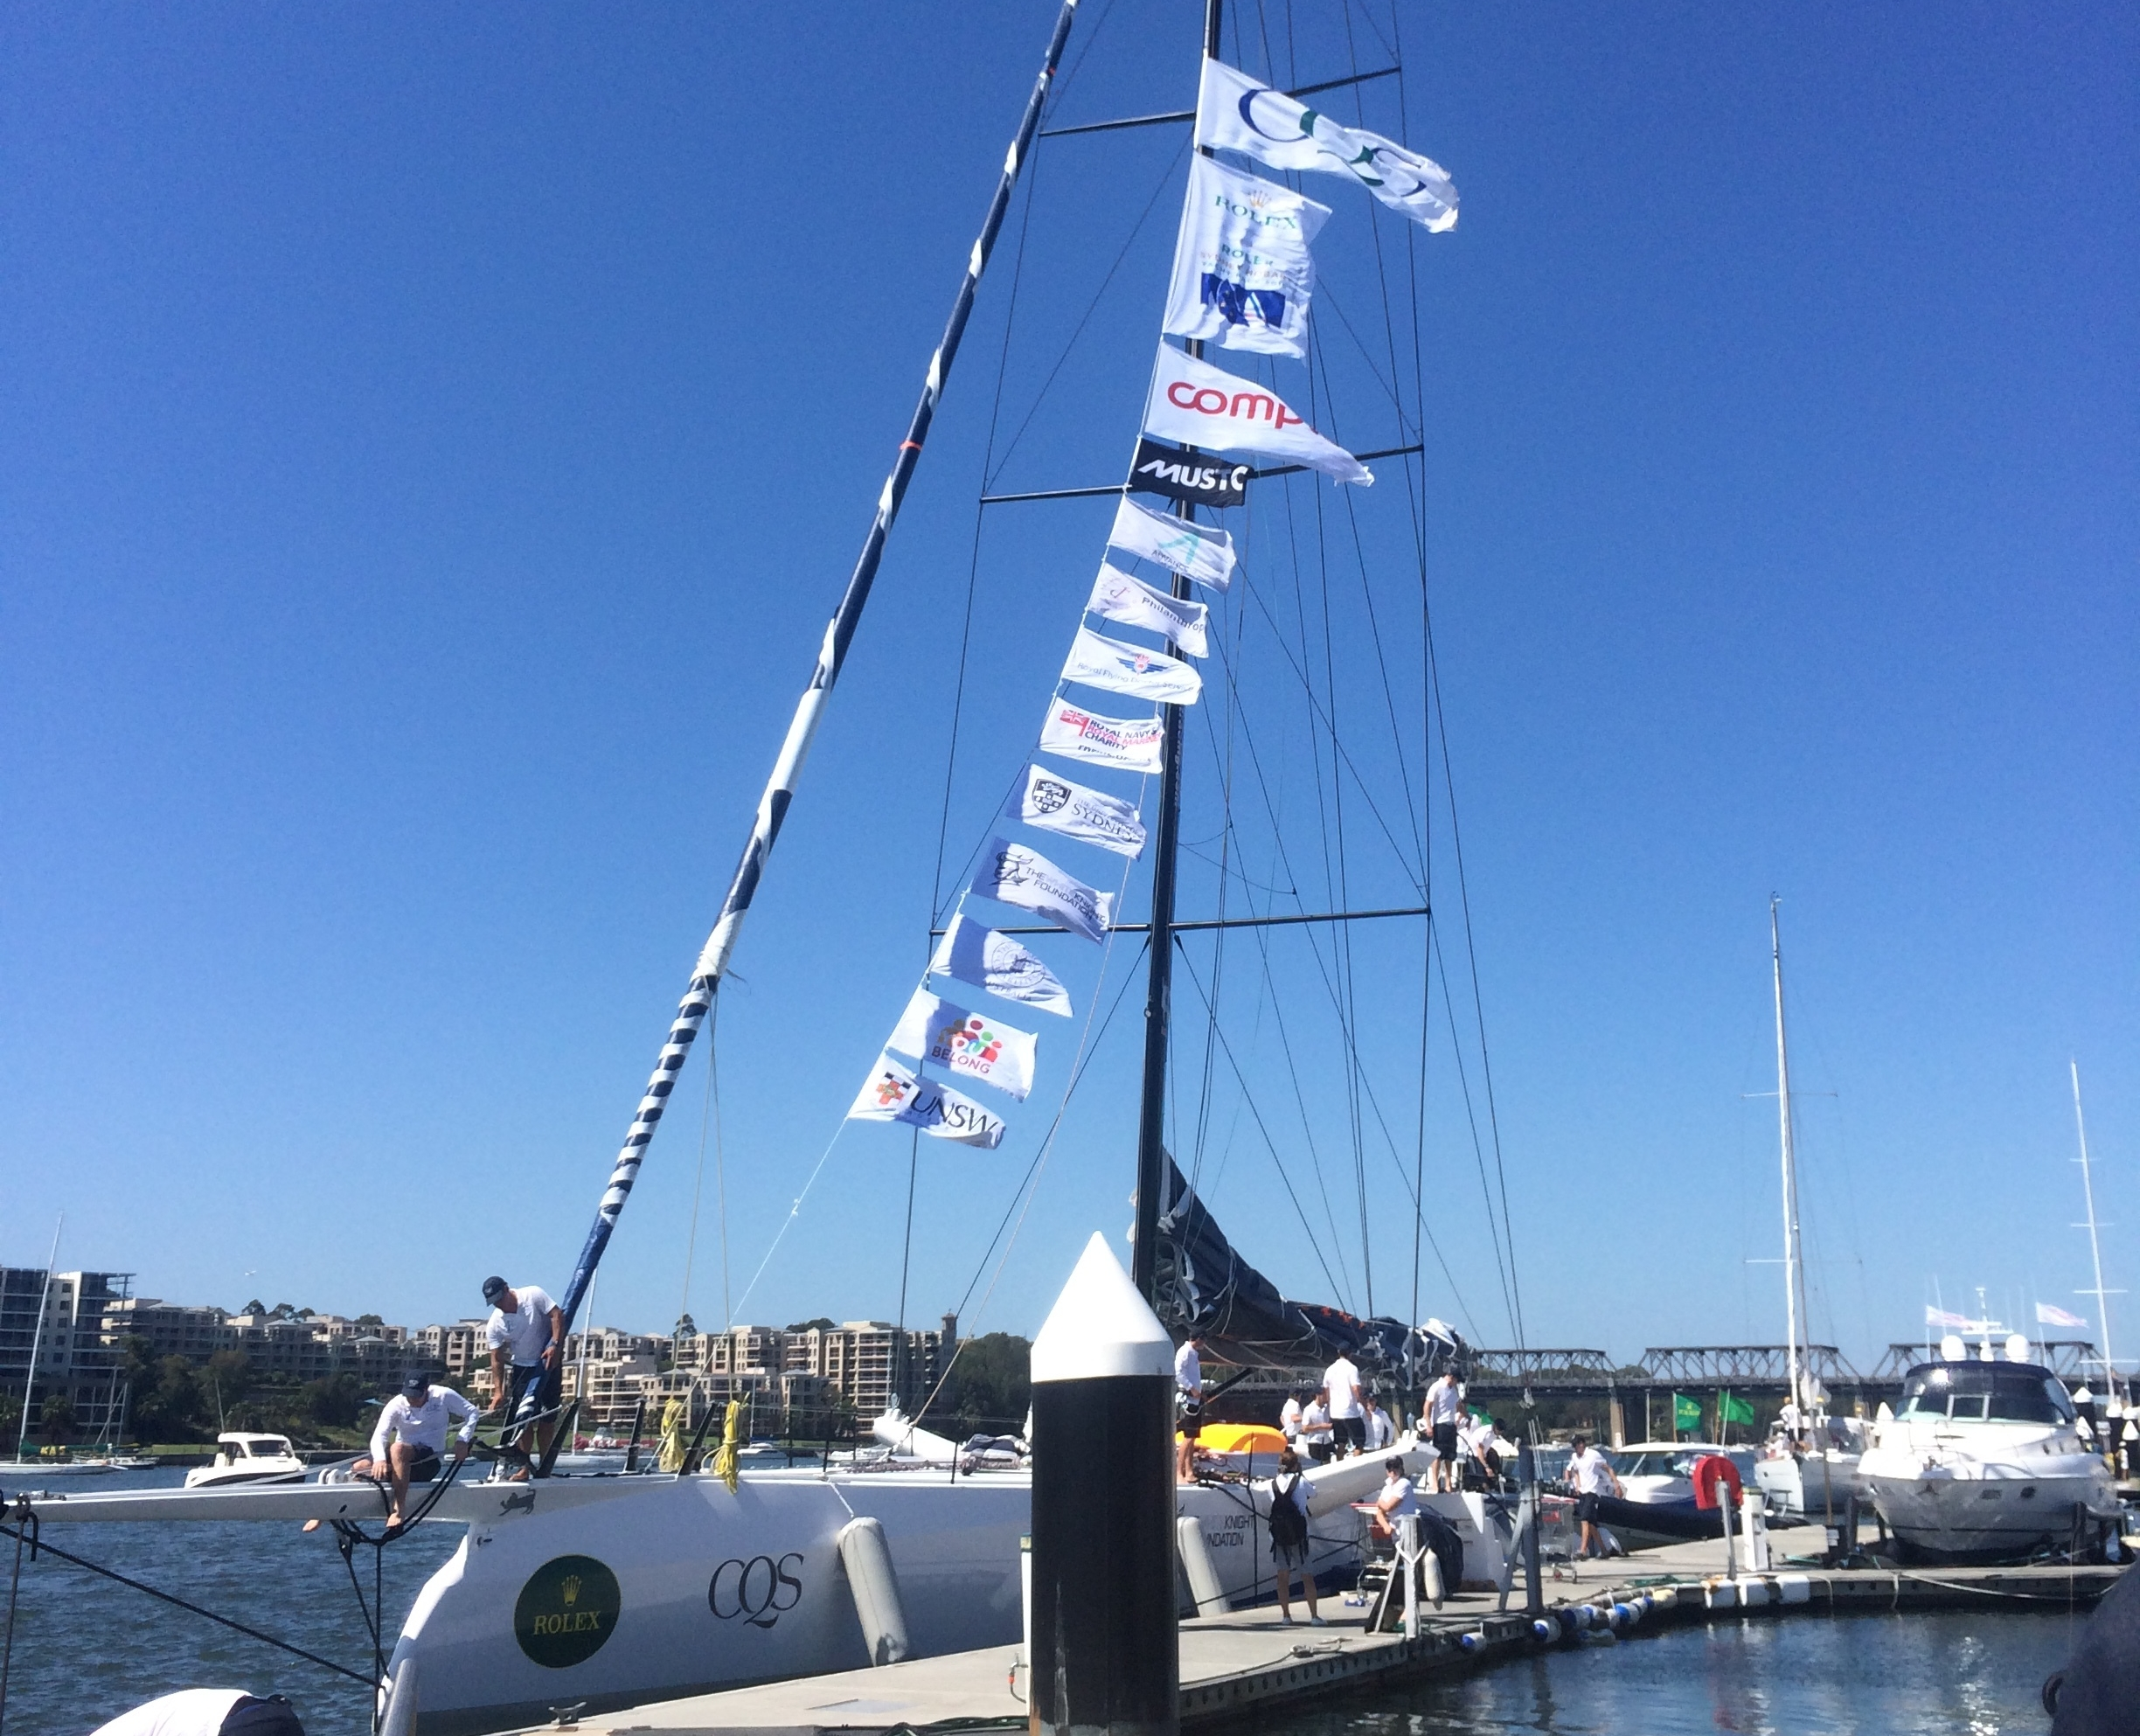 Flying the flags of our sponsors and charity partners